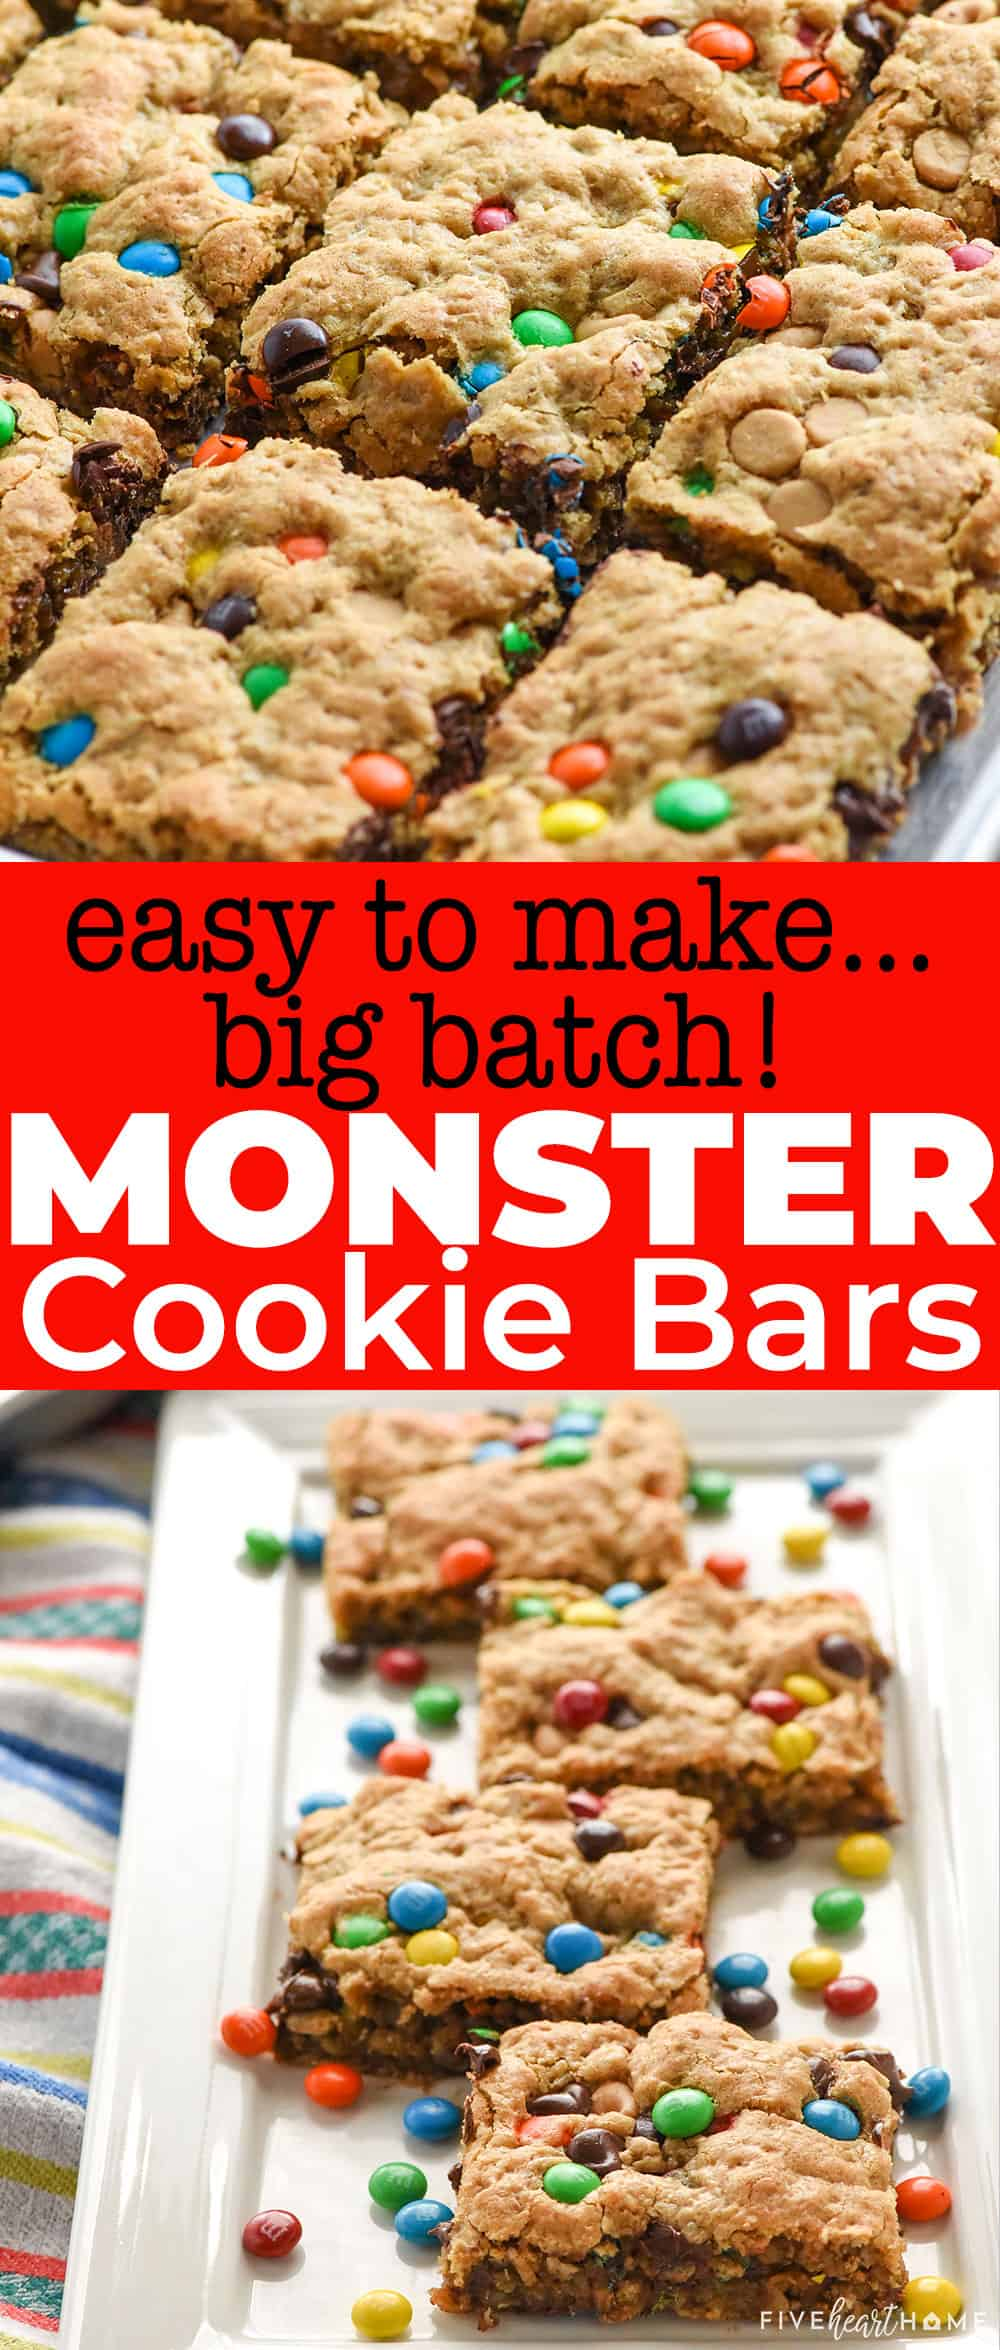 Loaded with oats, peanut butter, and M&M's, these chewy, naturally gluten-free Monster Cookie Bars require only ONE BOWL yet yield a BIG BATCH, making this the perfect quick and easy recipe when you need a bunch of sweet treats for a party or celebration! via @fivehearthome